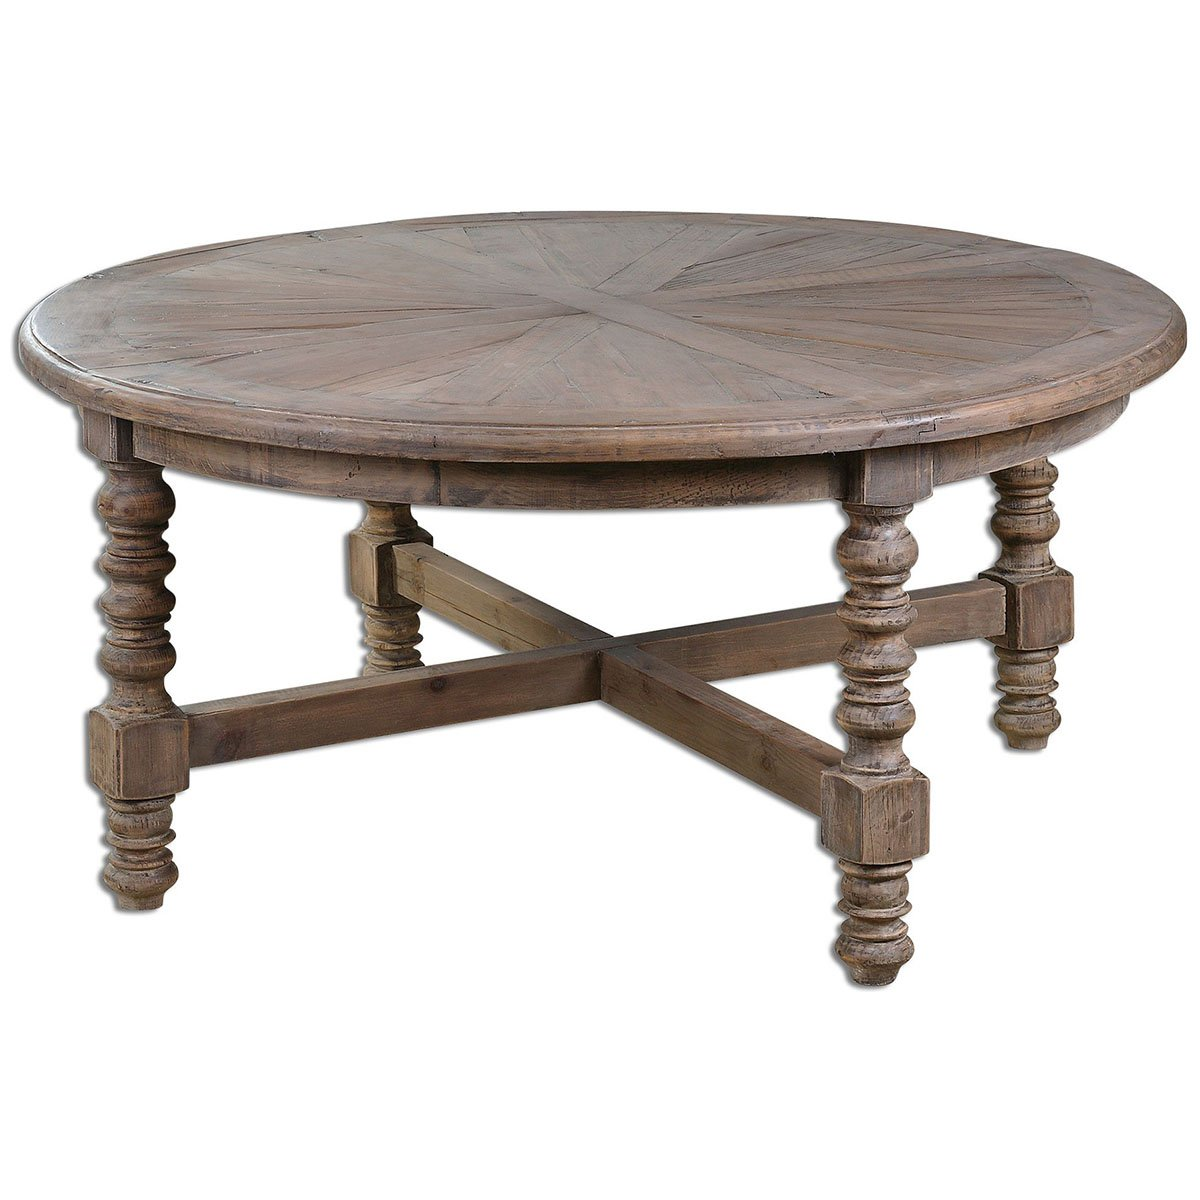 Amazon.com: Uttermost 24345 Samuelle Wooden Coffee Table: Kitchen & Dining